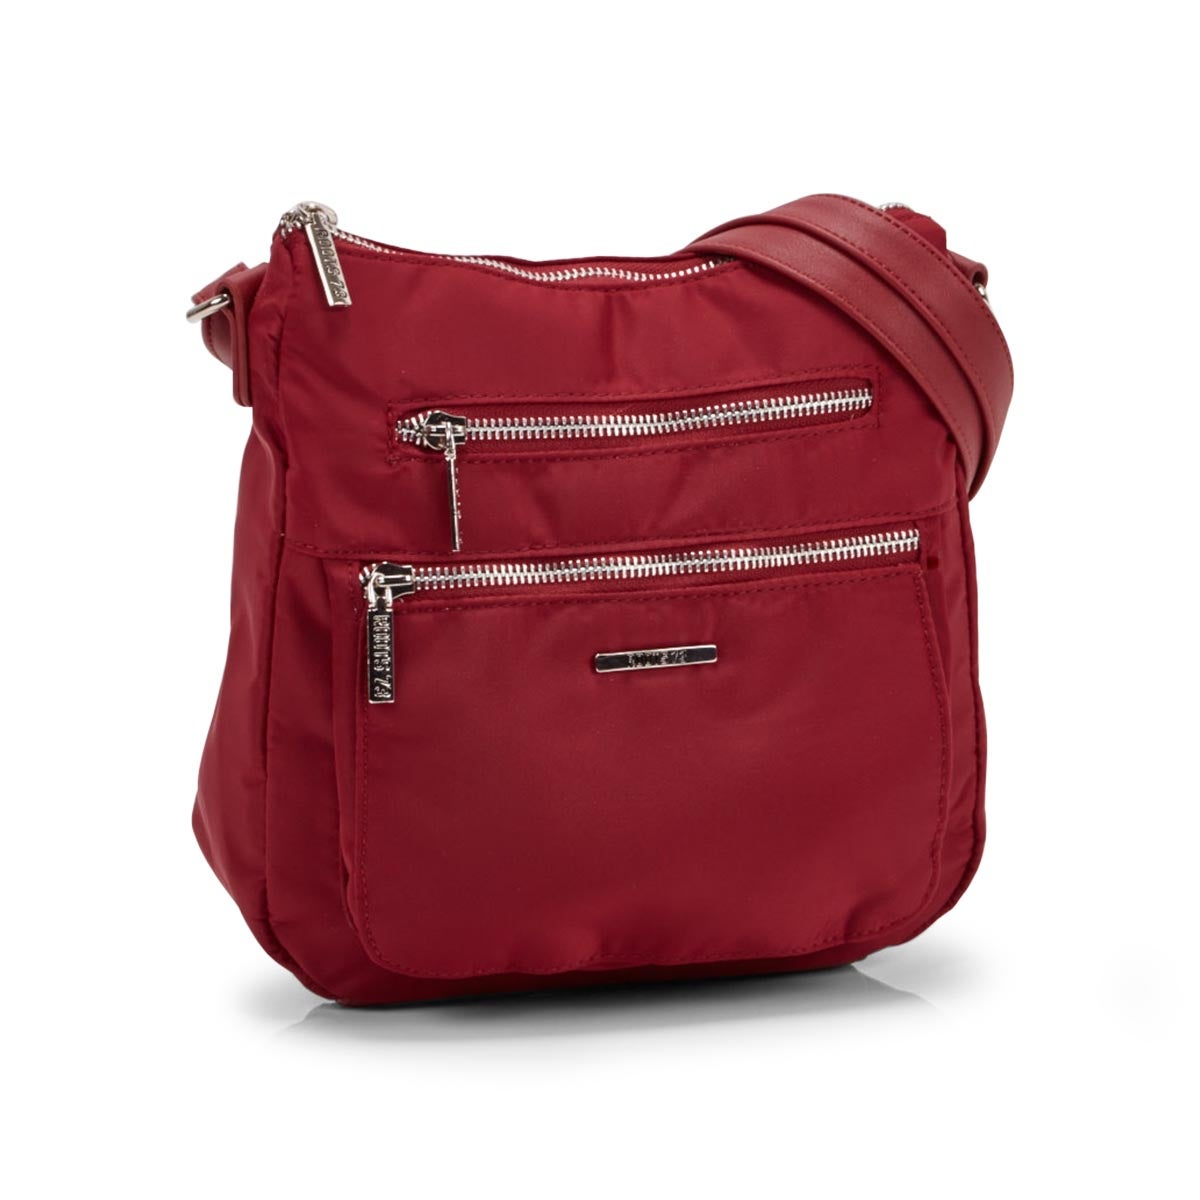 Lds red north/south top zip crossbody